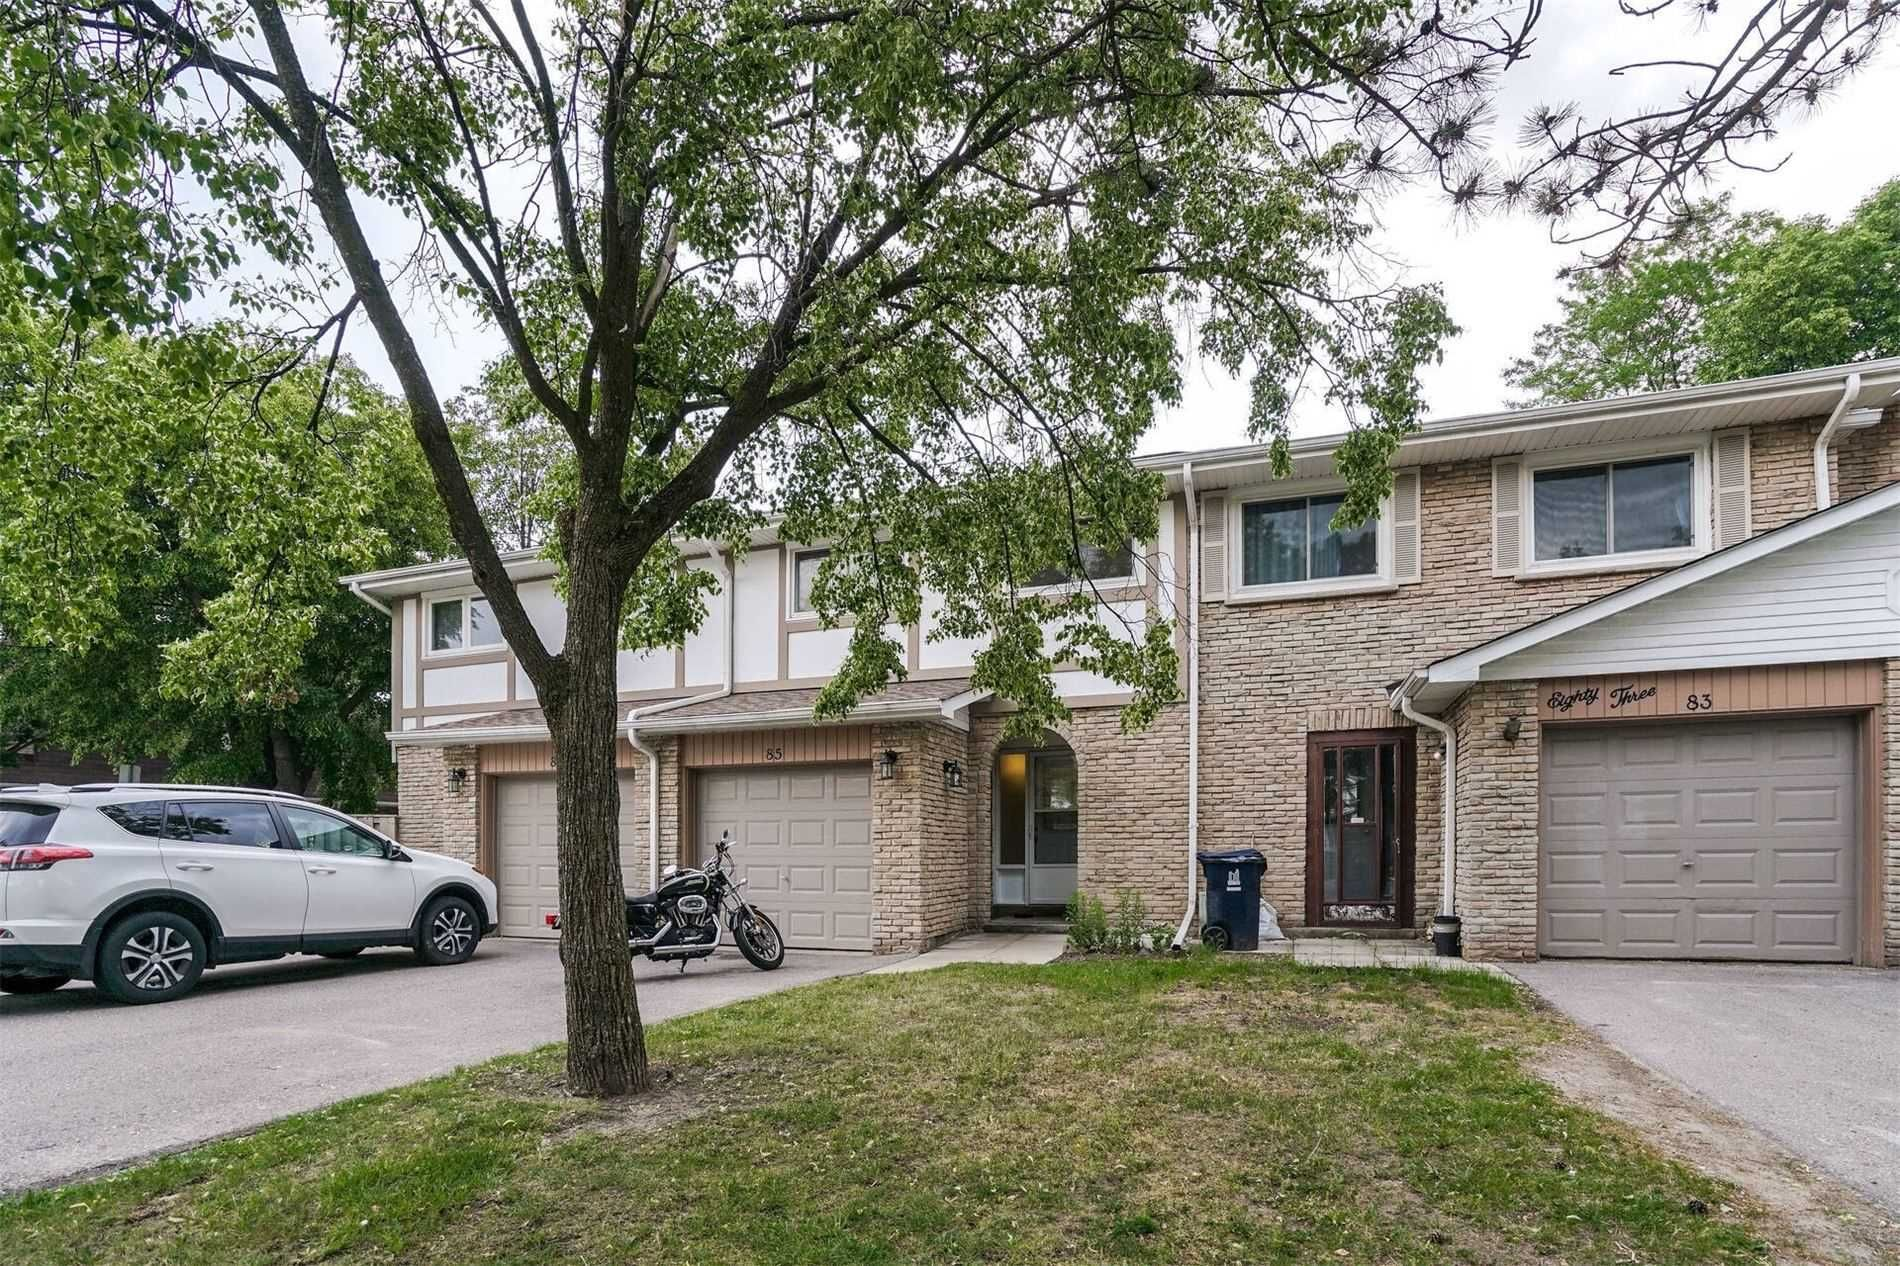 85 Brimwood Blvd, unit null for sale in Toronto - image #1